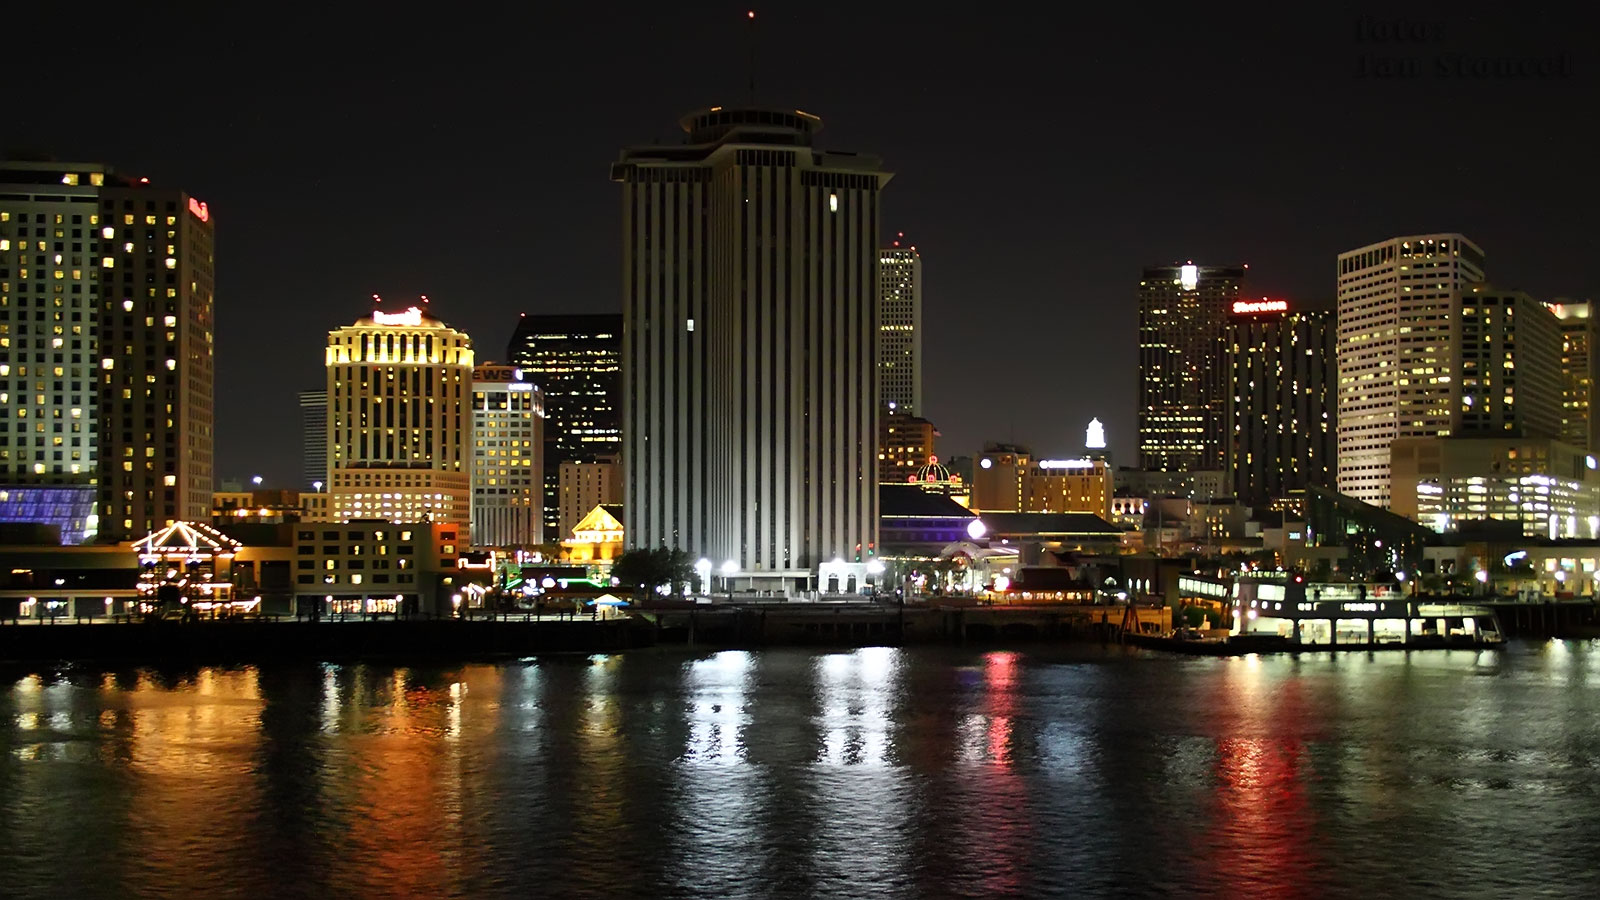 Download New Orleans Hd Wallpaper Gallery